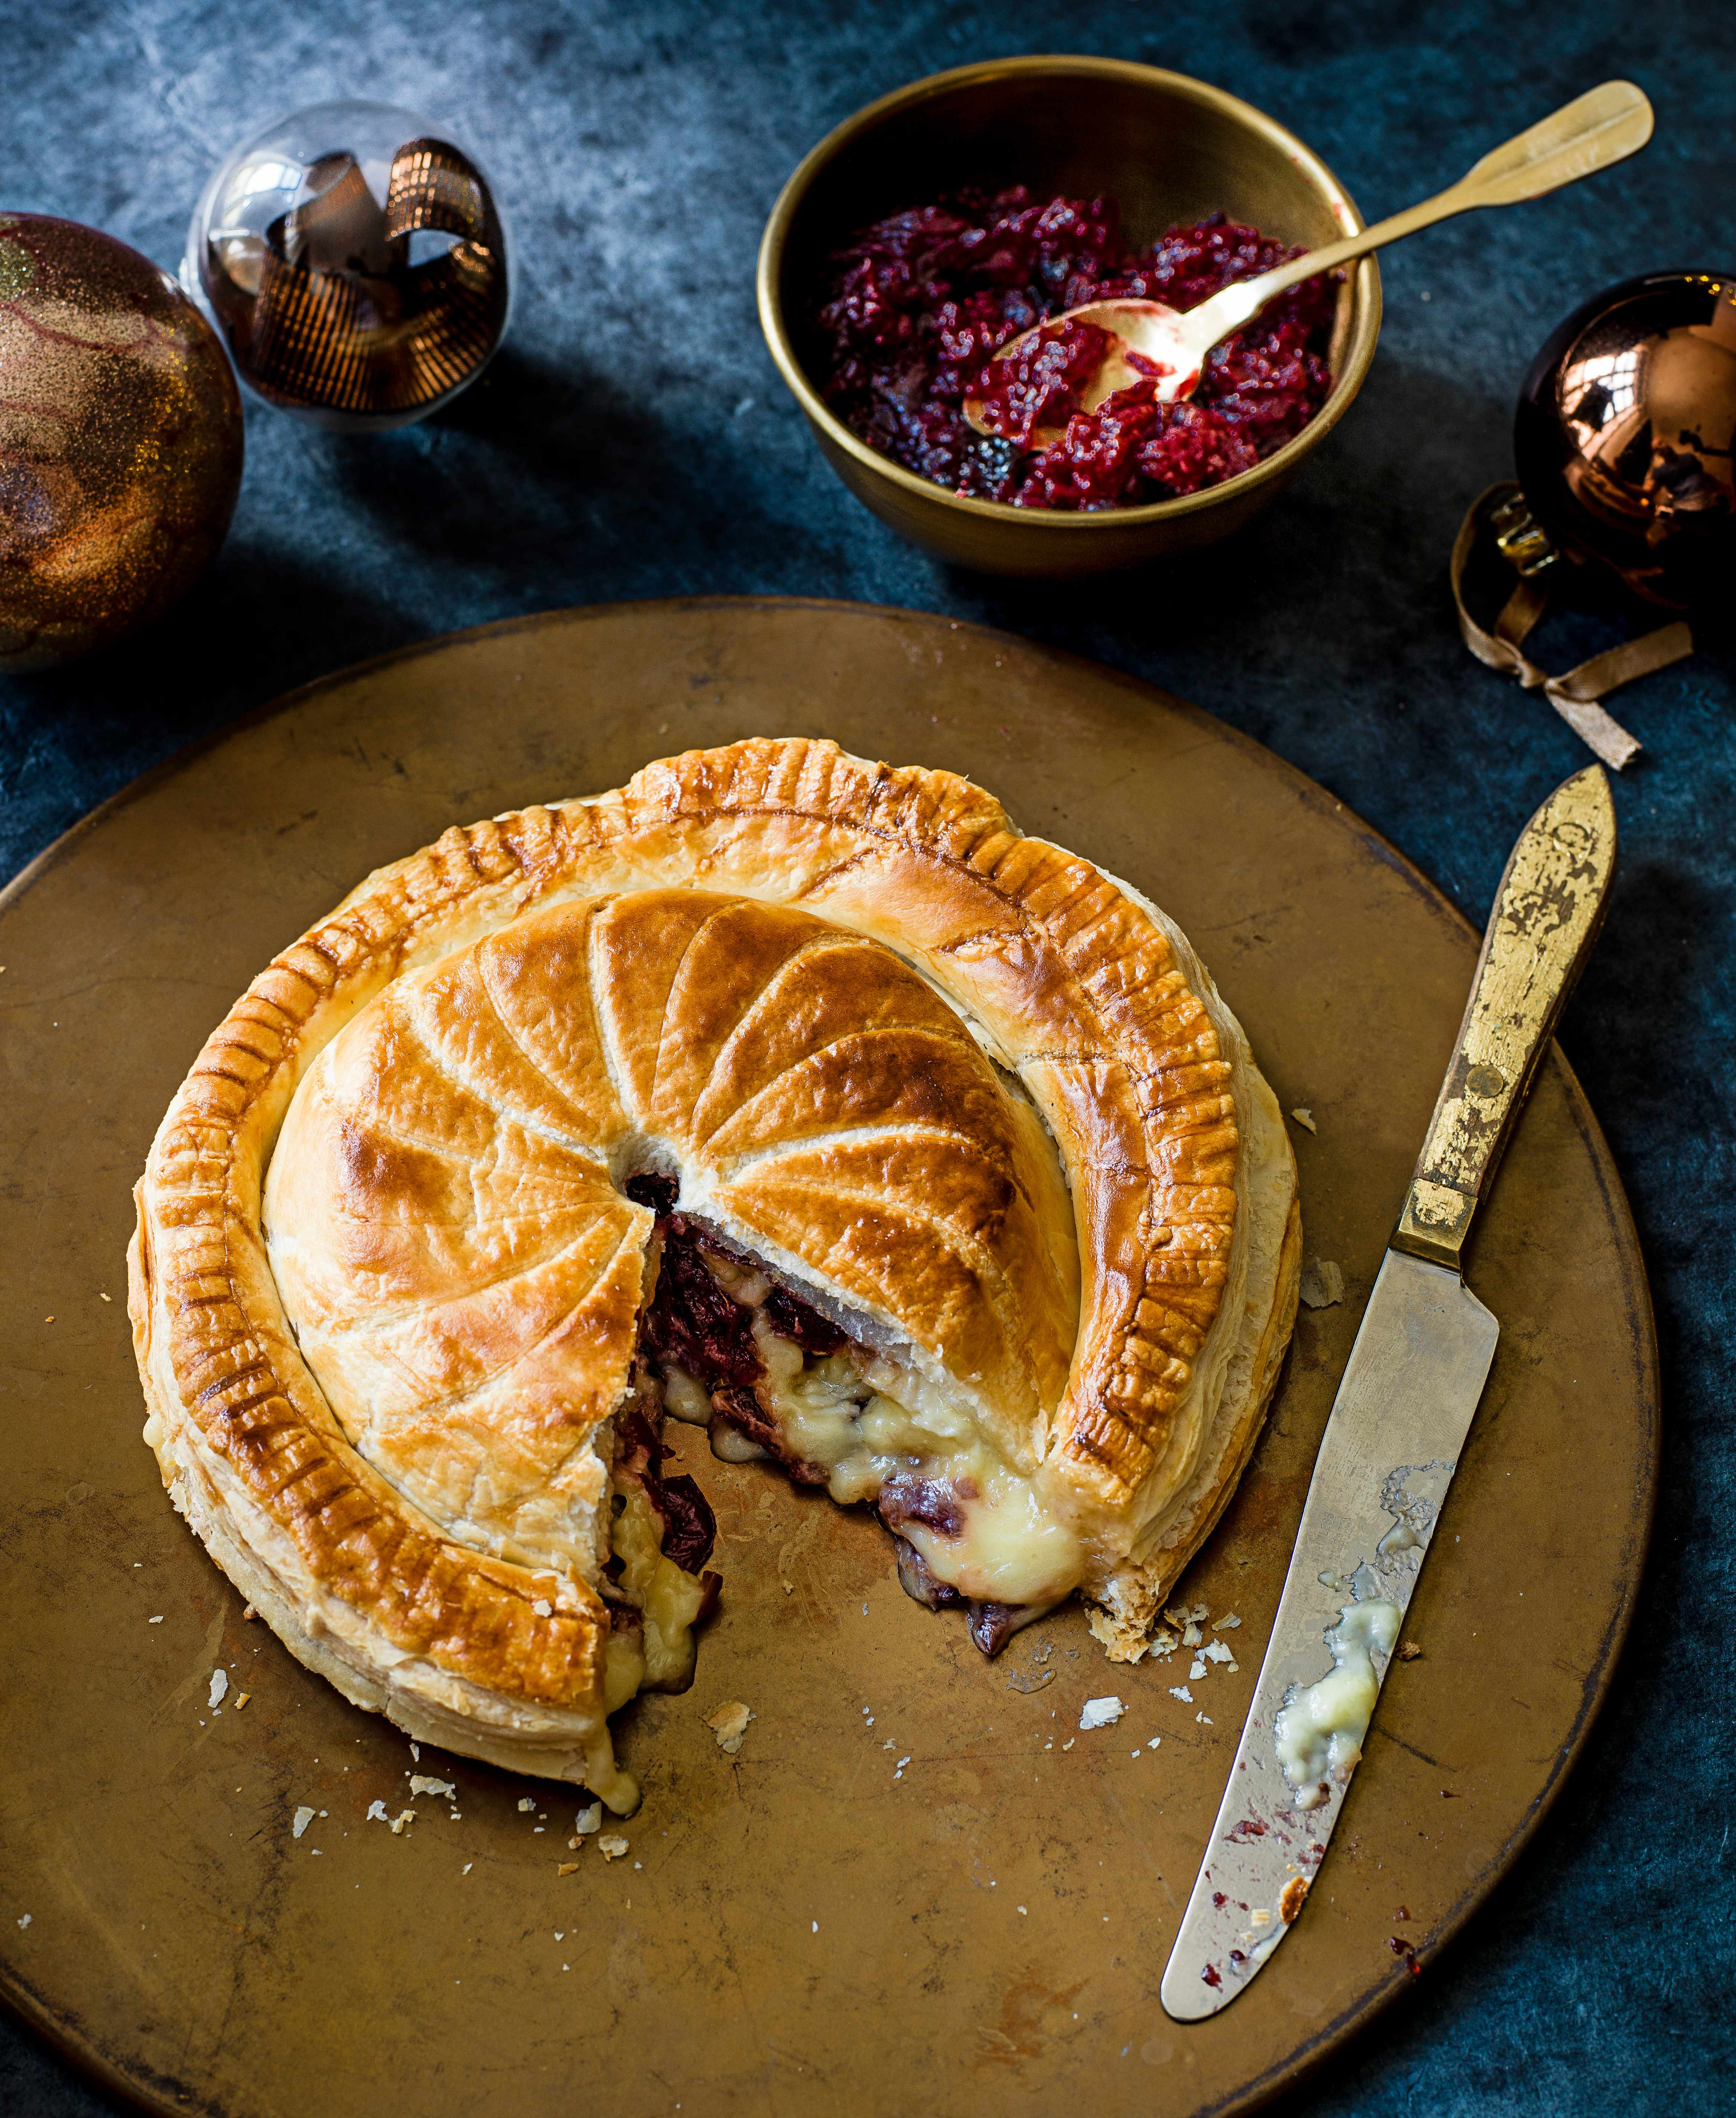 Camembert and Cranberry Pithivier